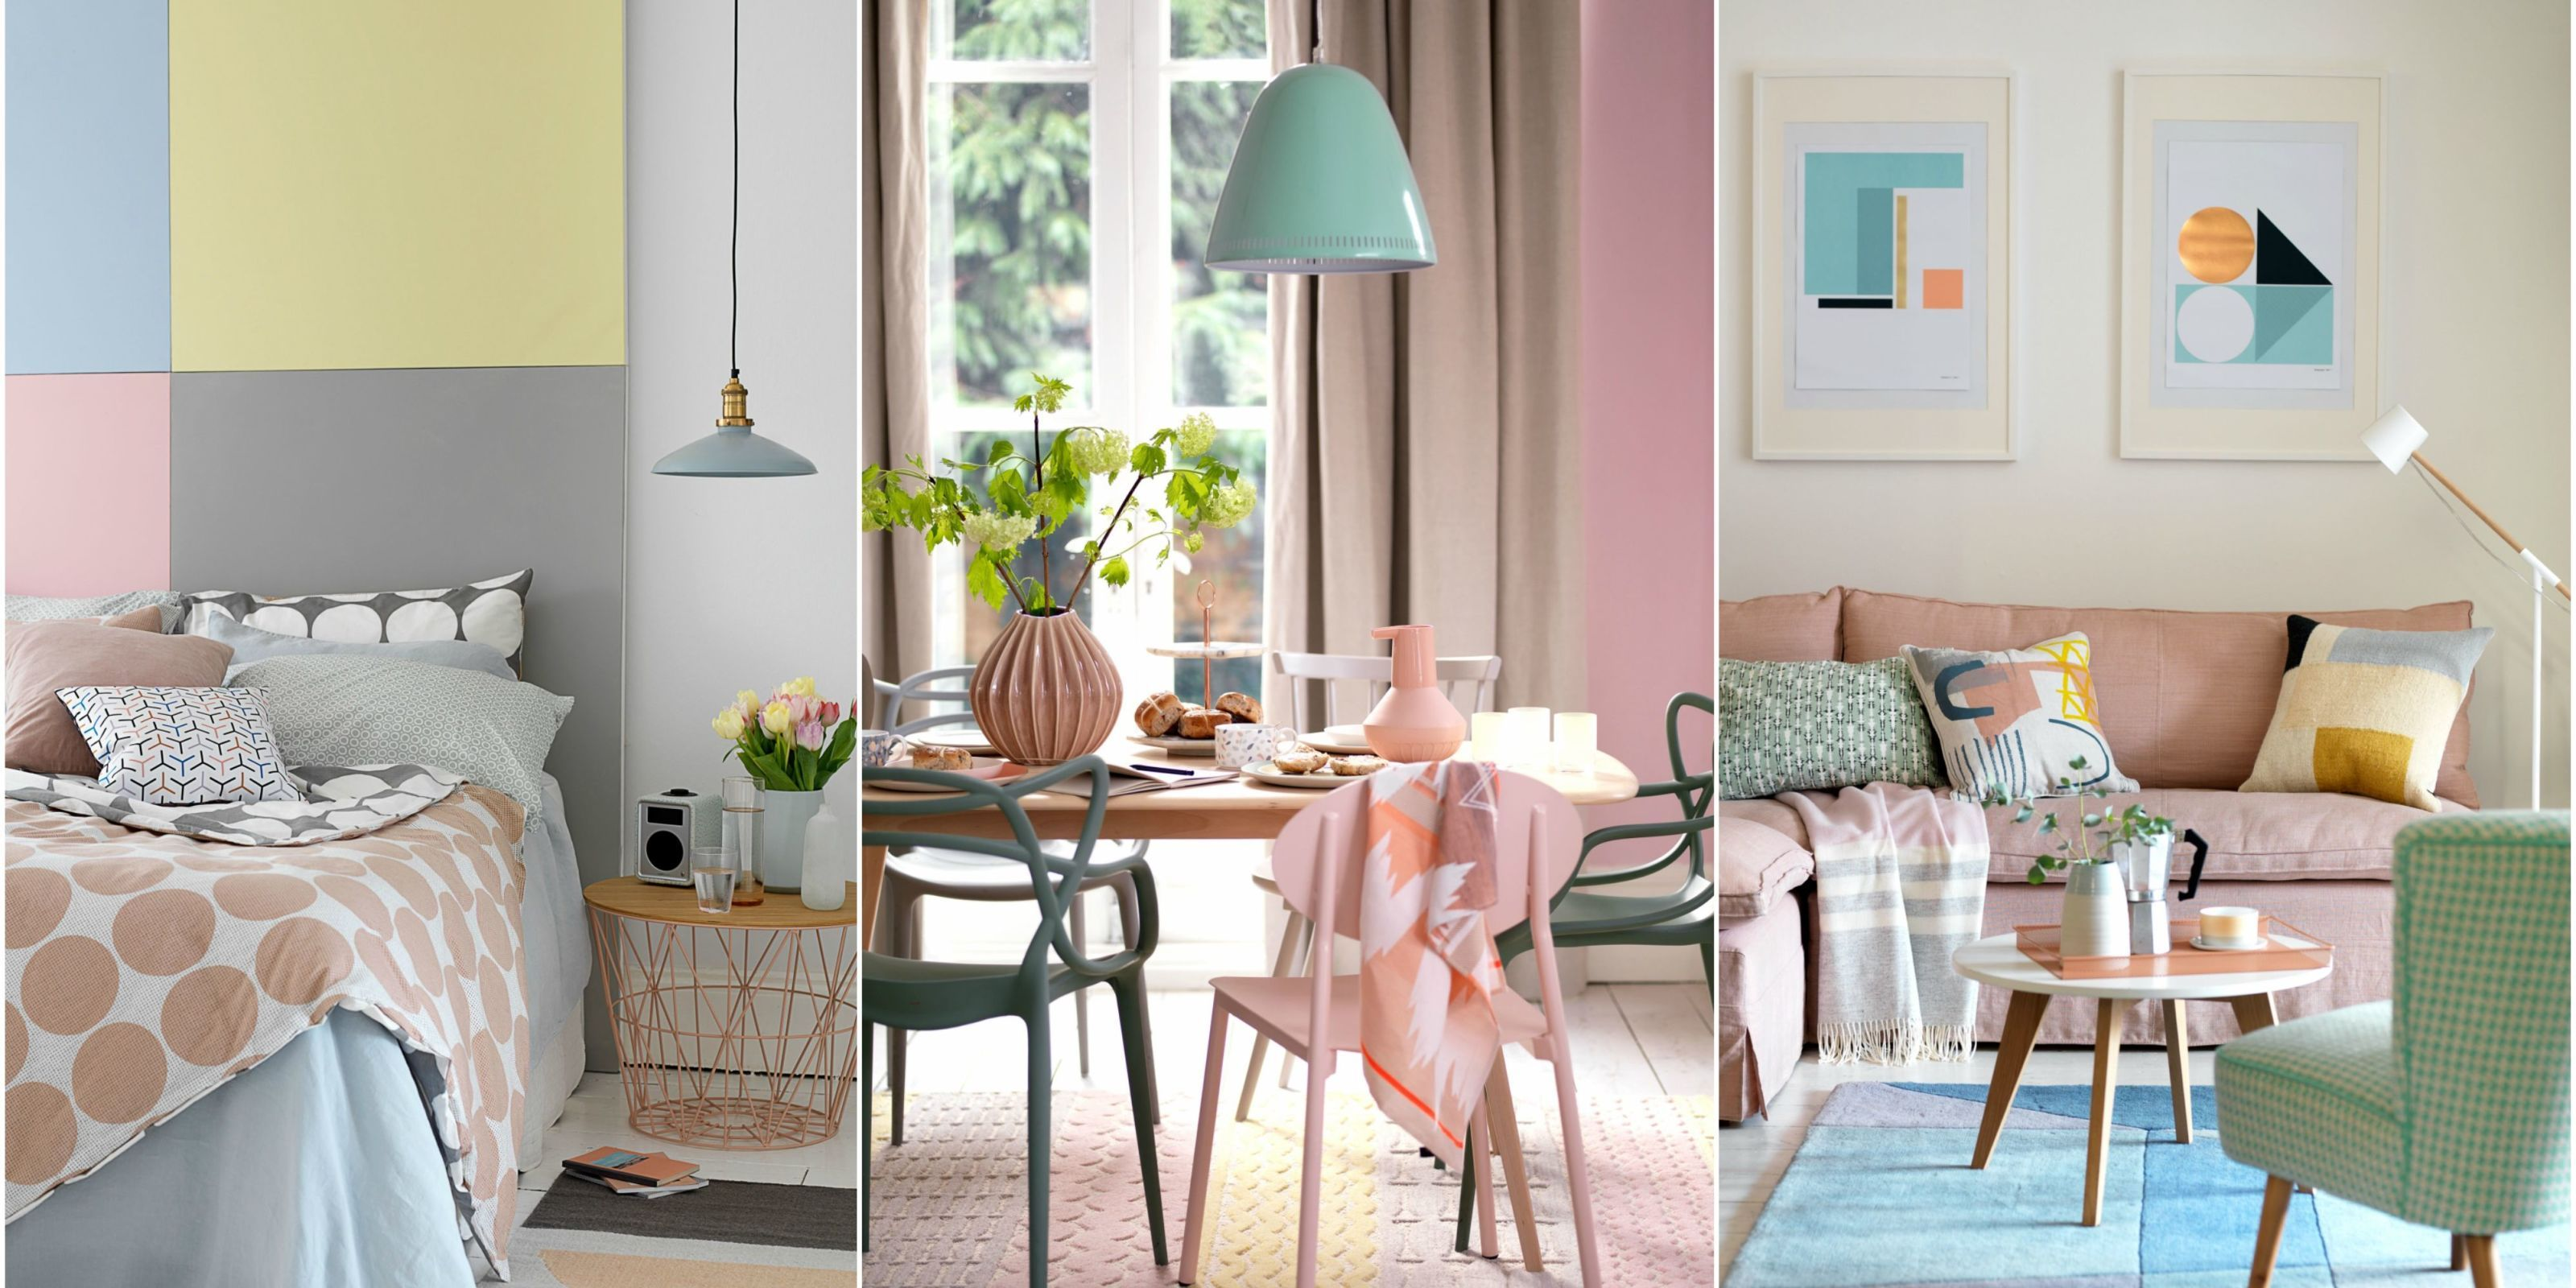 Decorating With Soft Pastels   Style Inspiration. Styling By Hannah Deacon,  Photography By Tim